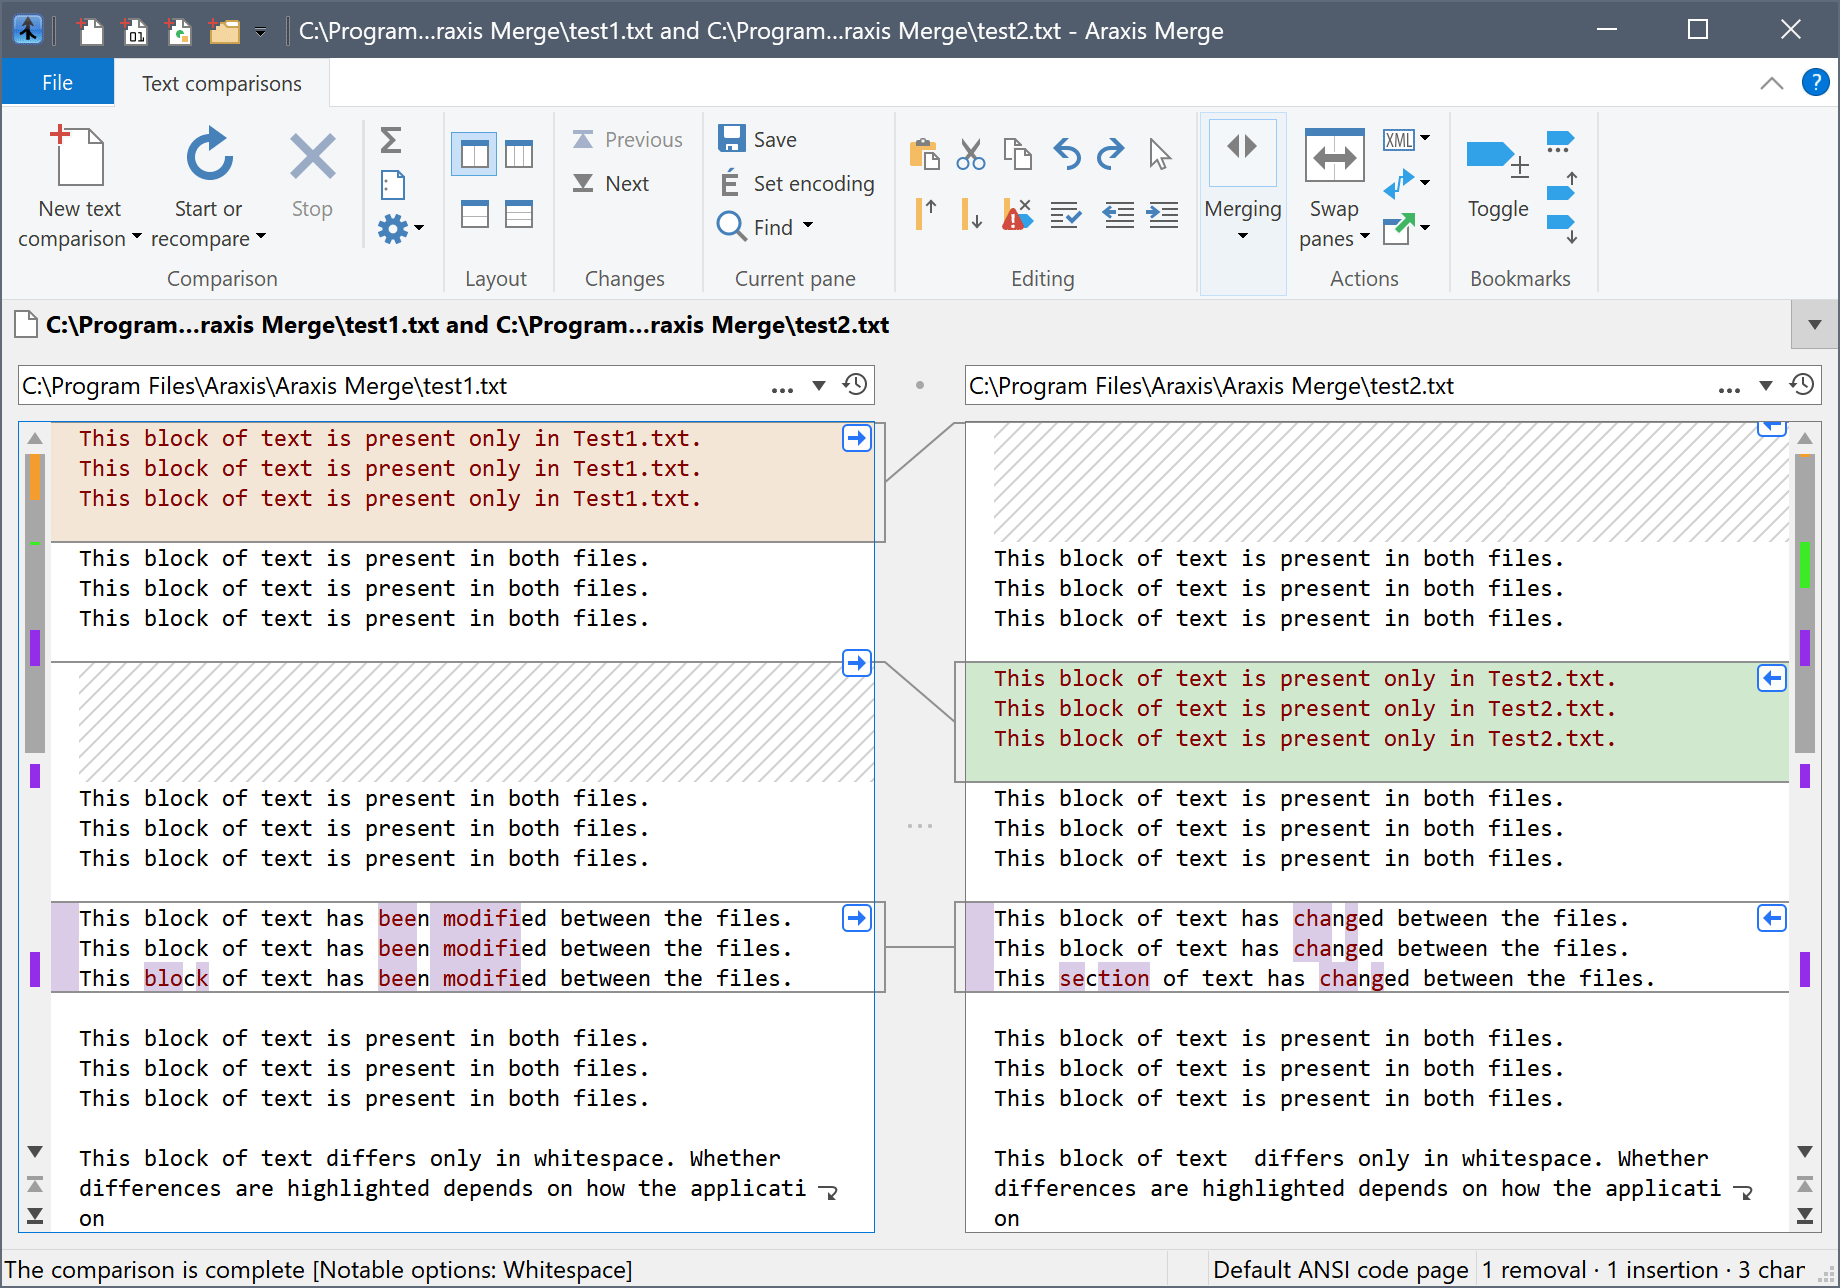 Comparing Text Files (or Typed/Pasted Text)